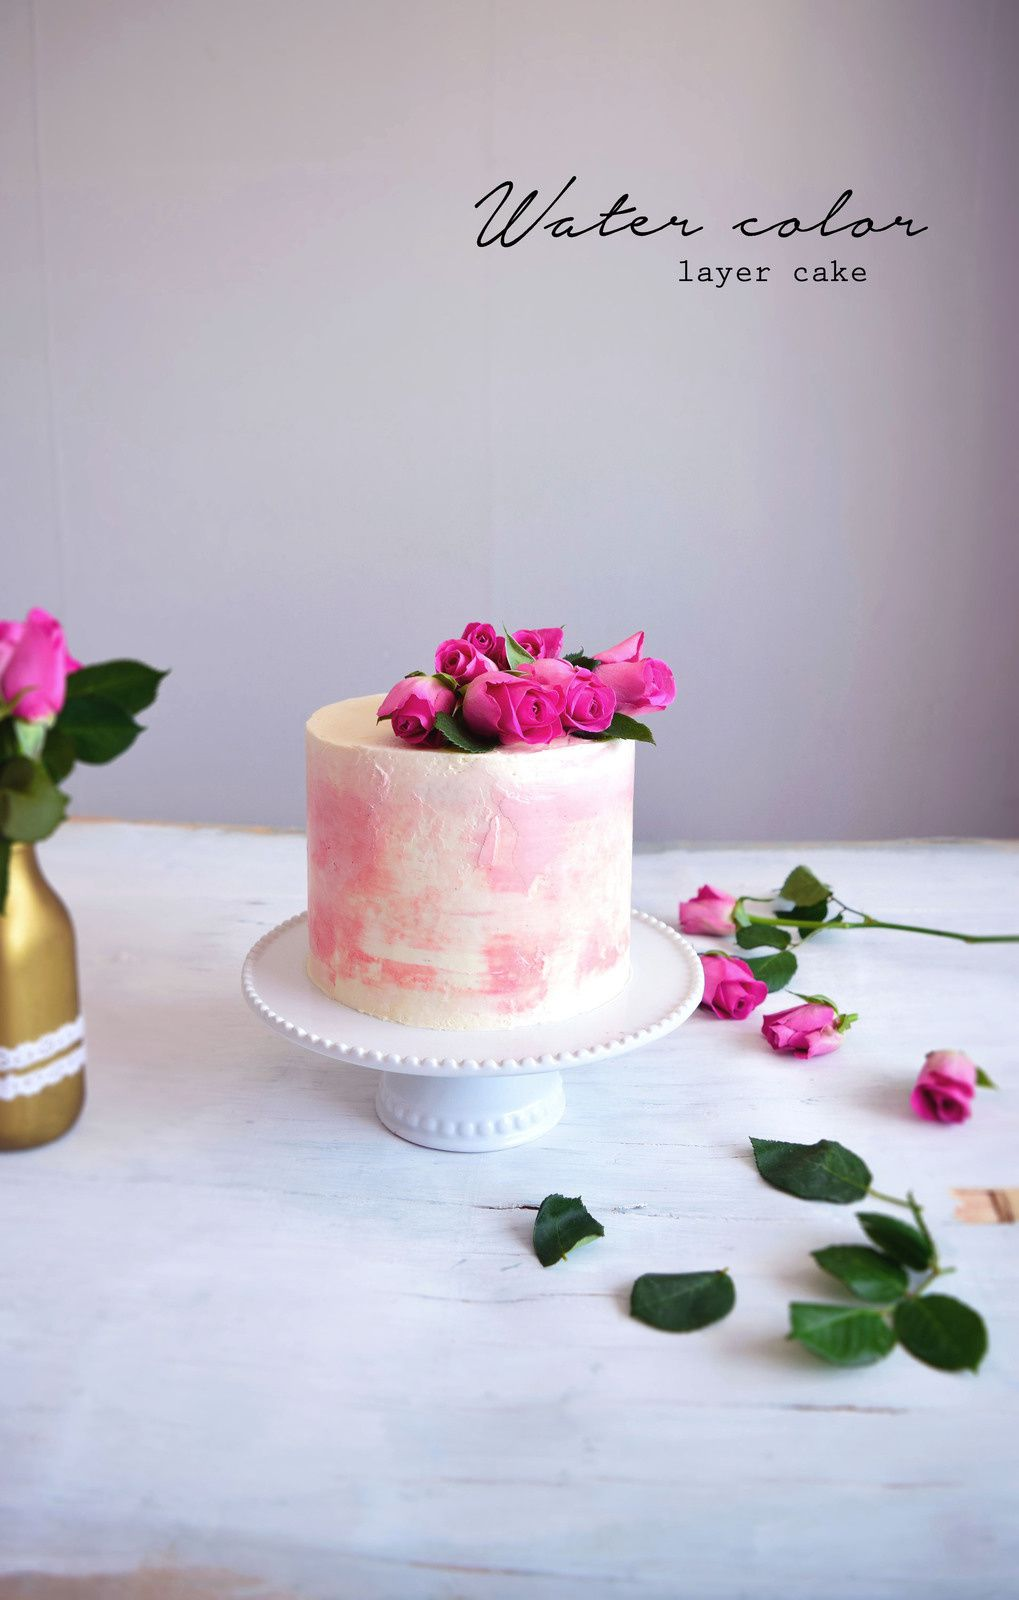 Water color layer cake